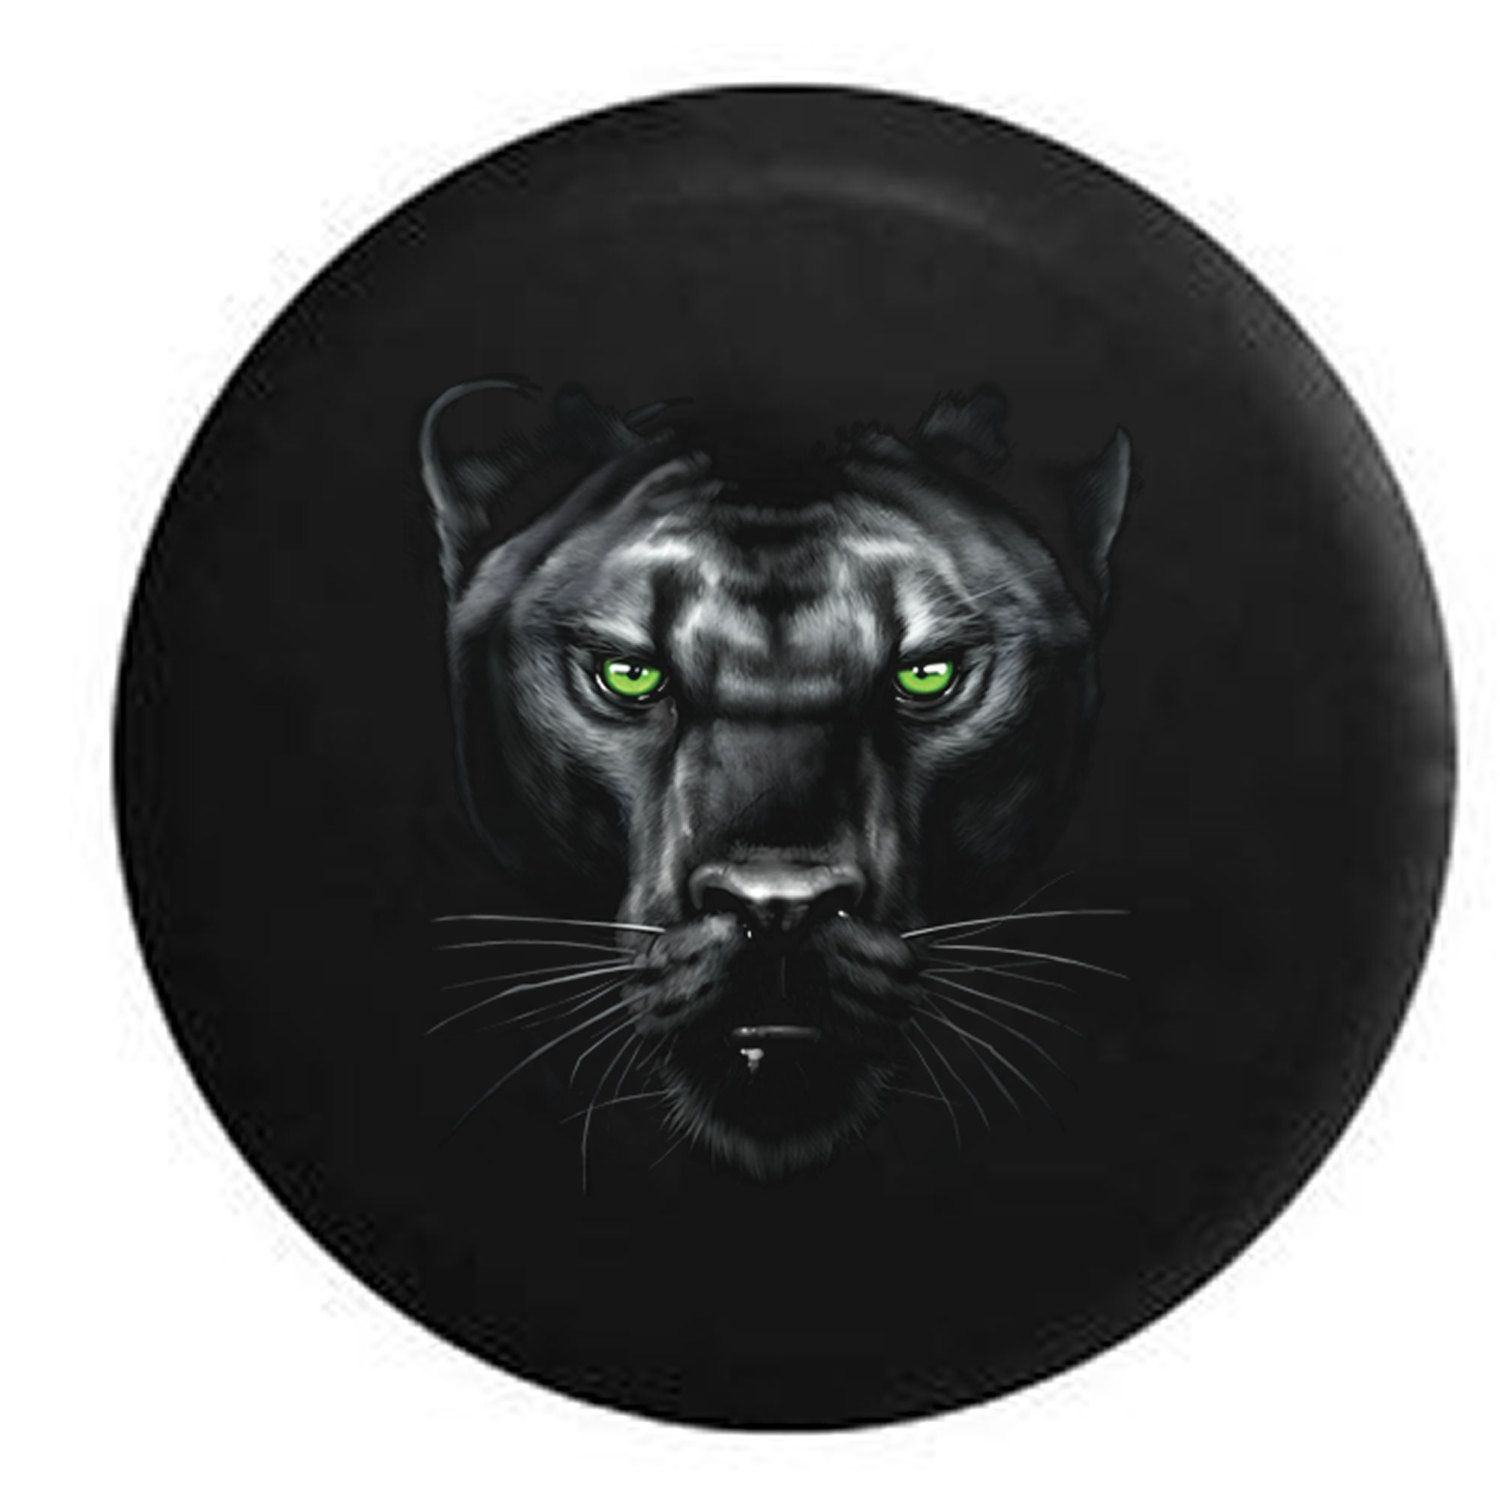 Majestic Black Panther Vibrant Eyes Jeep Rv Camper Spare Tire